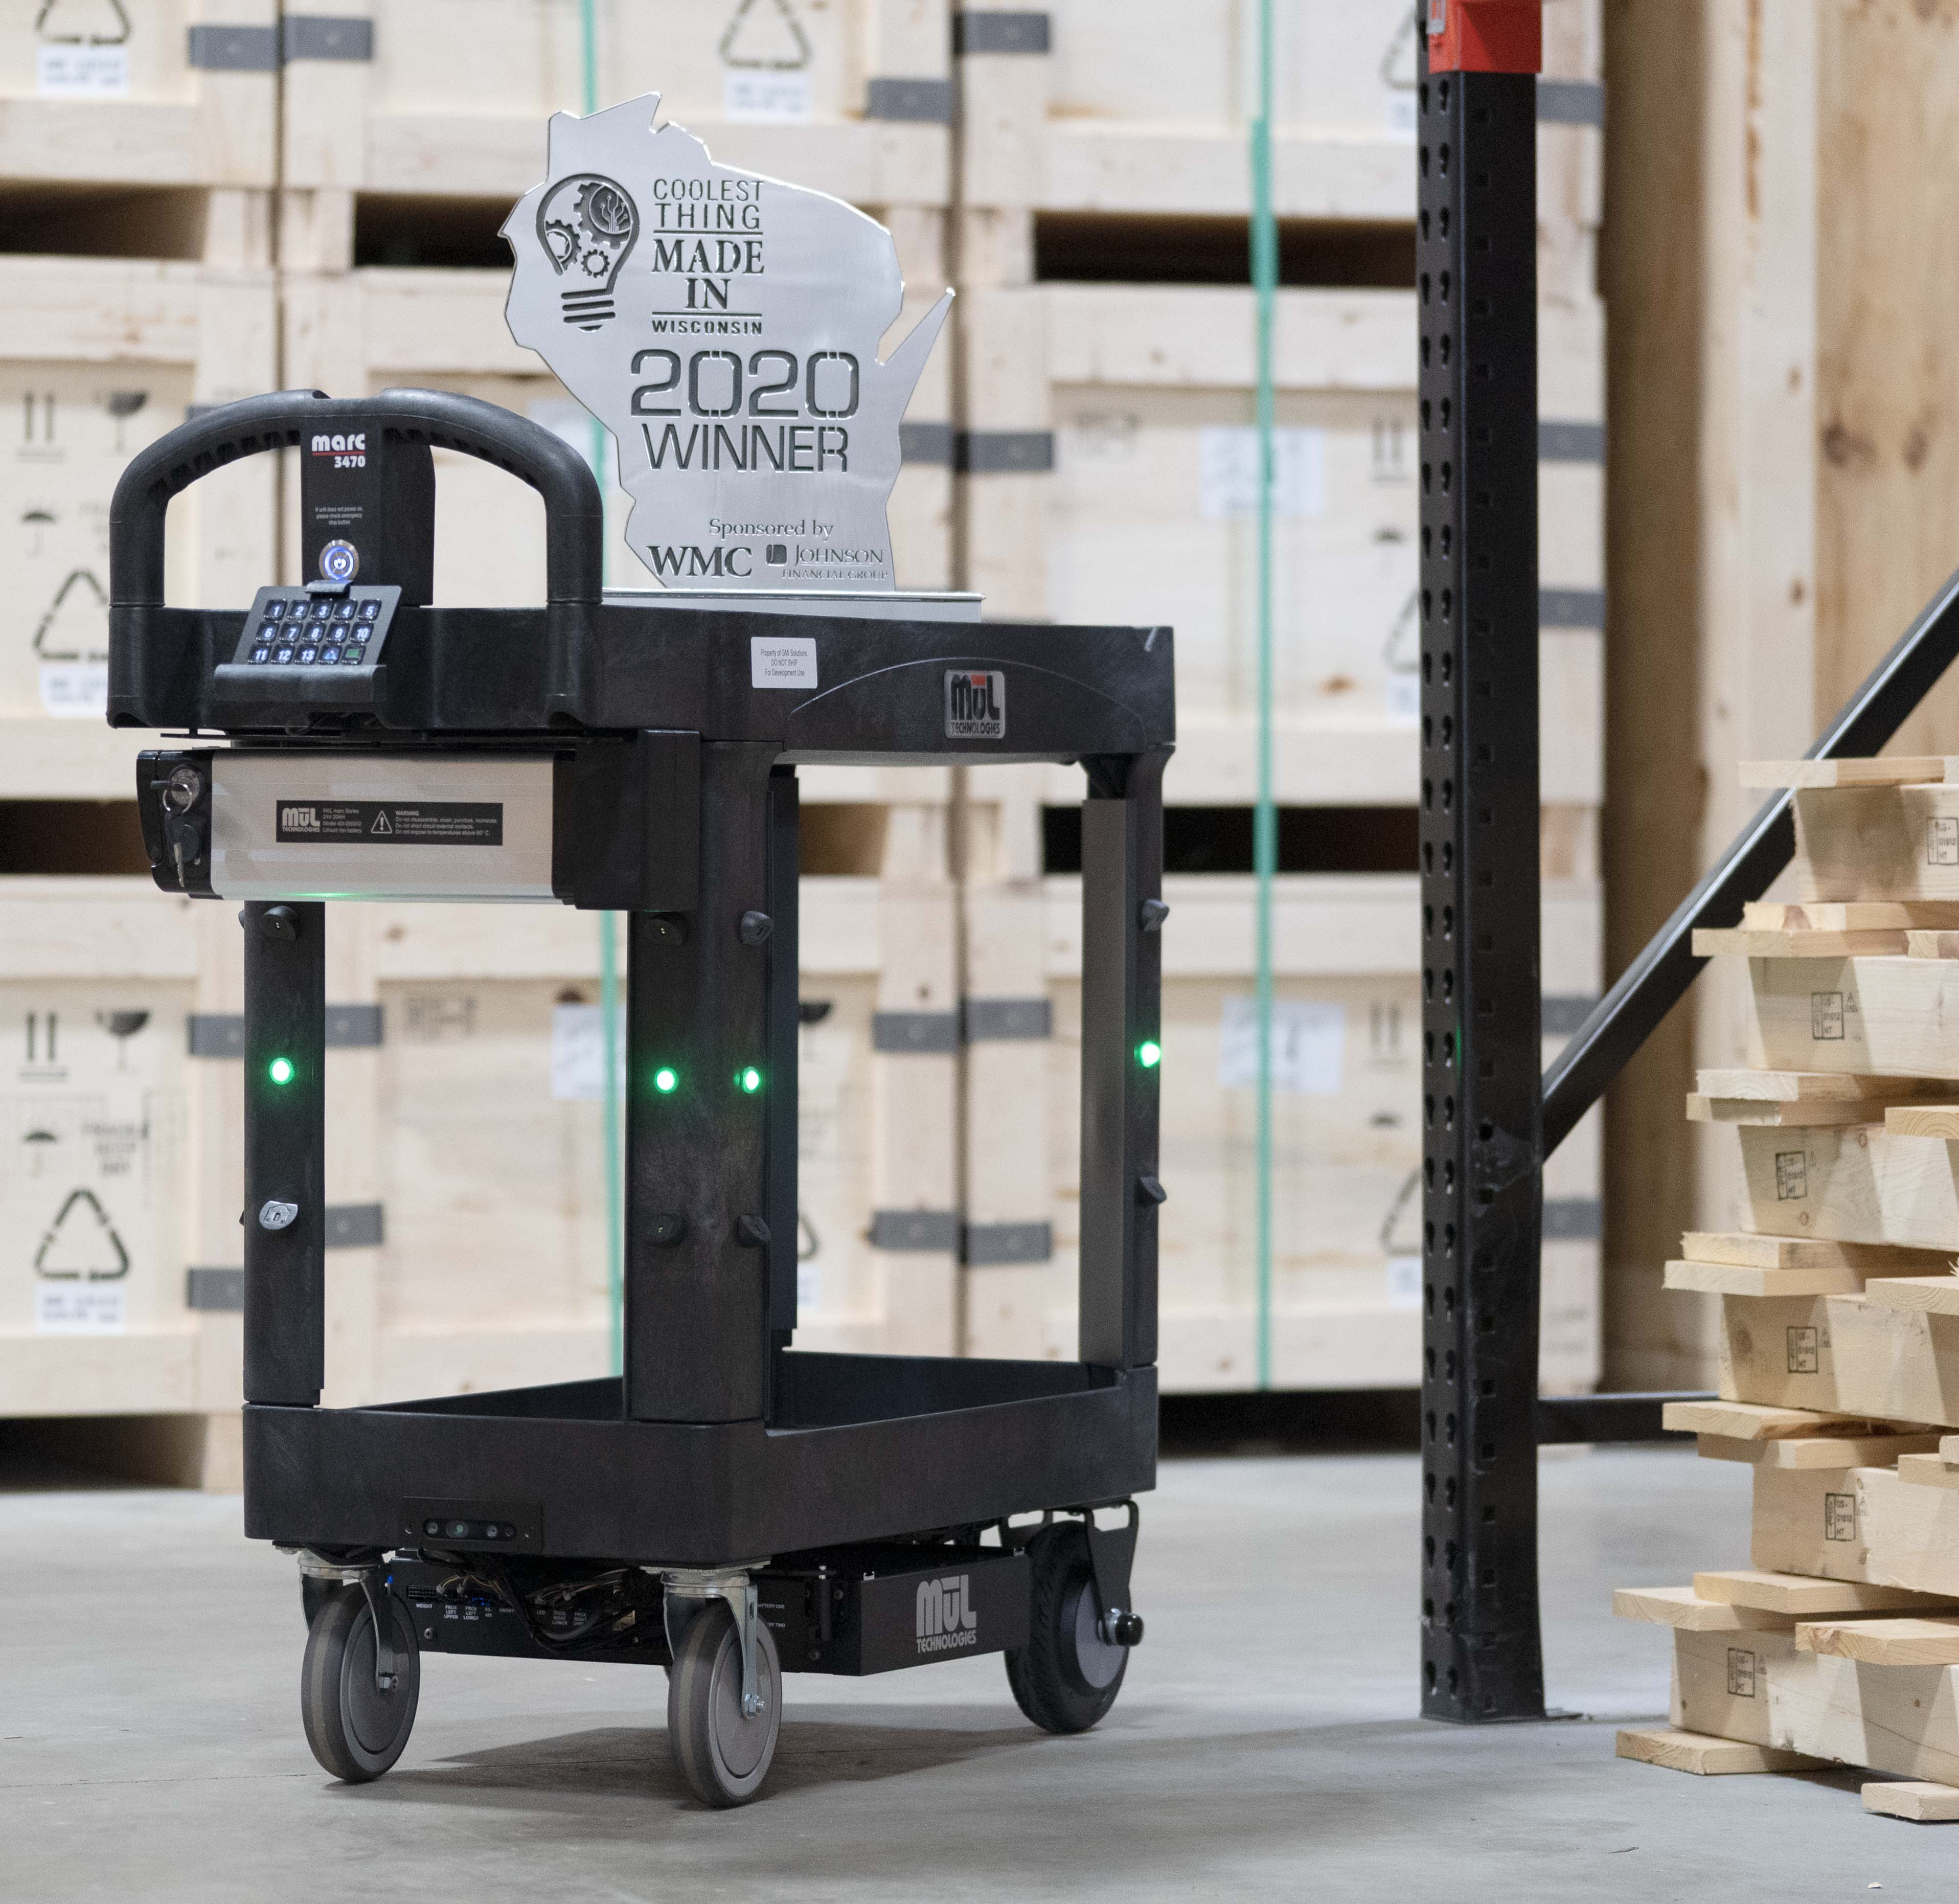 MARC 3470 with trophy in warehouse